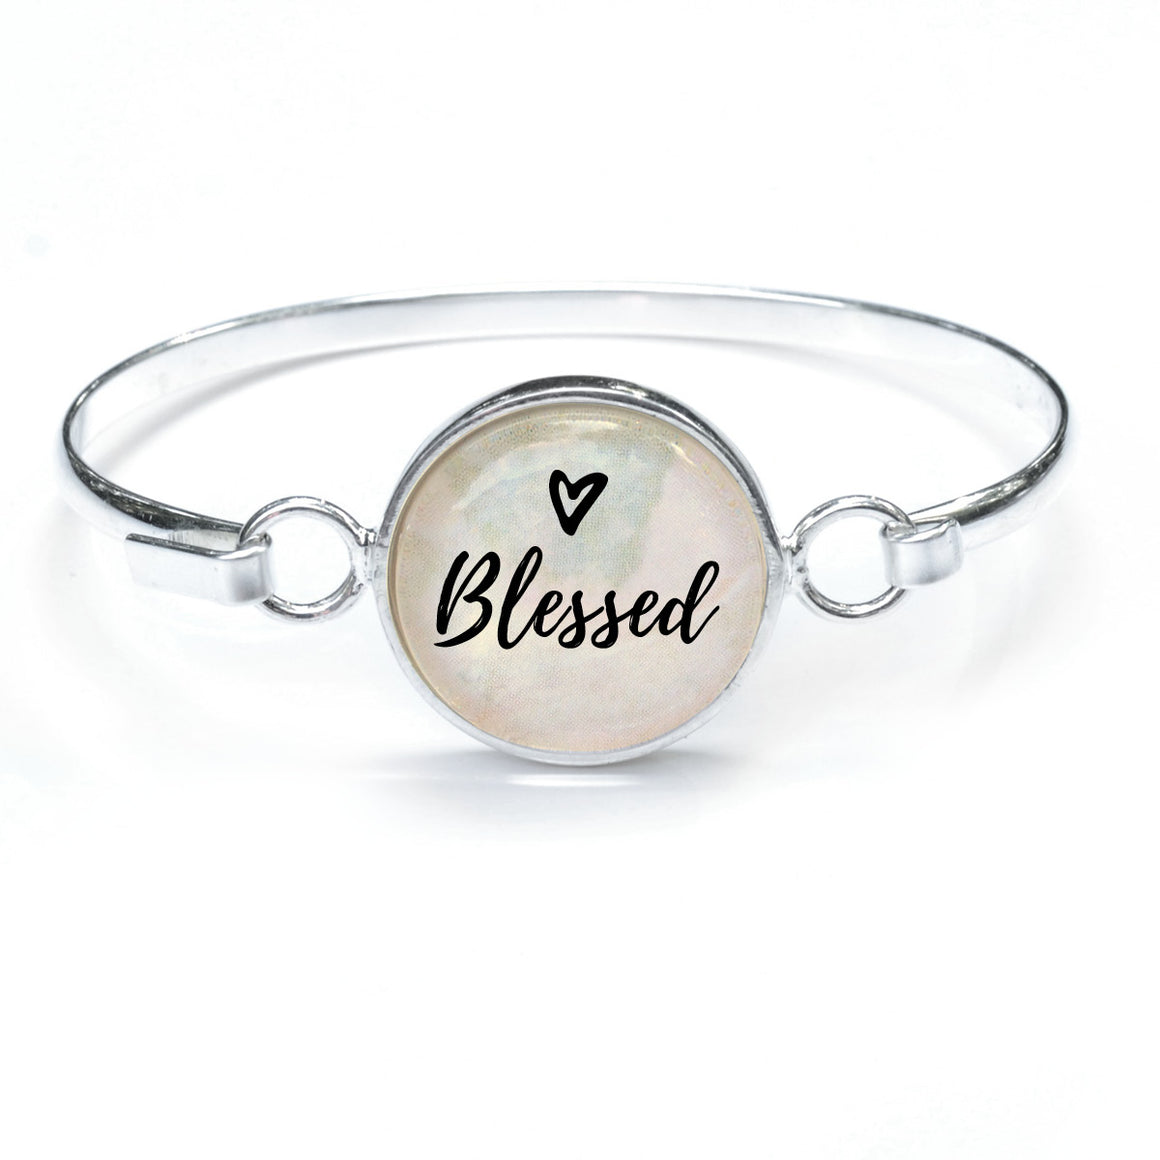 """Blessed"" Silver-Plated Bangle Bracelet with Glass Charm - 3 Sizes"